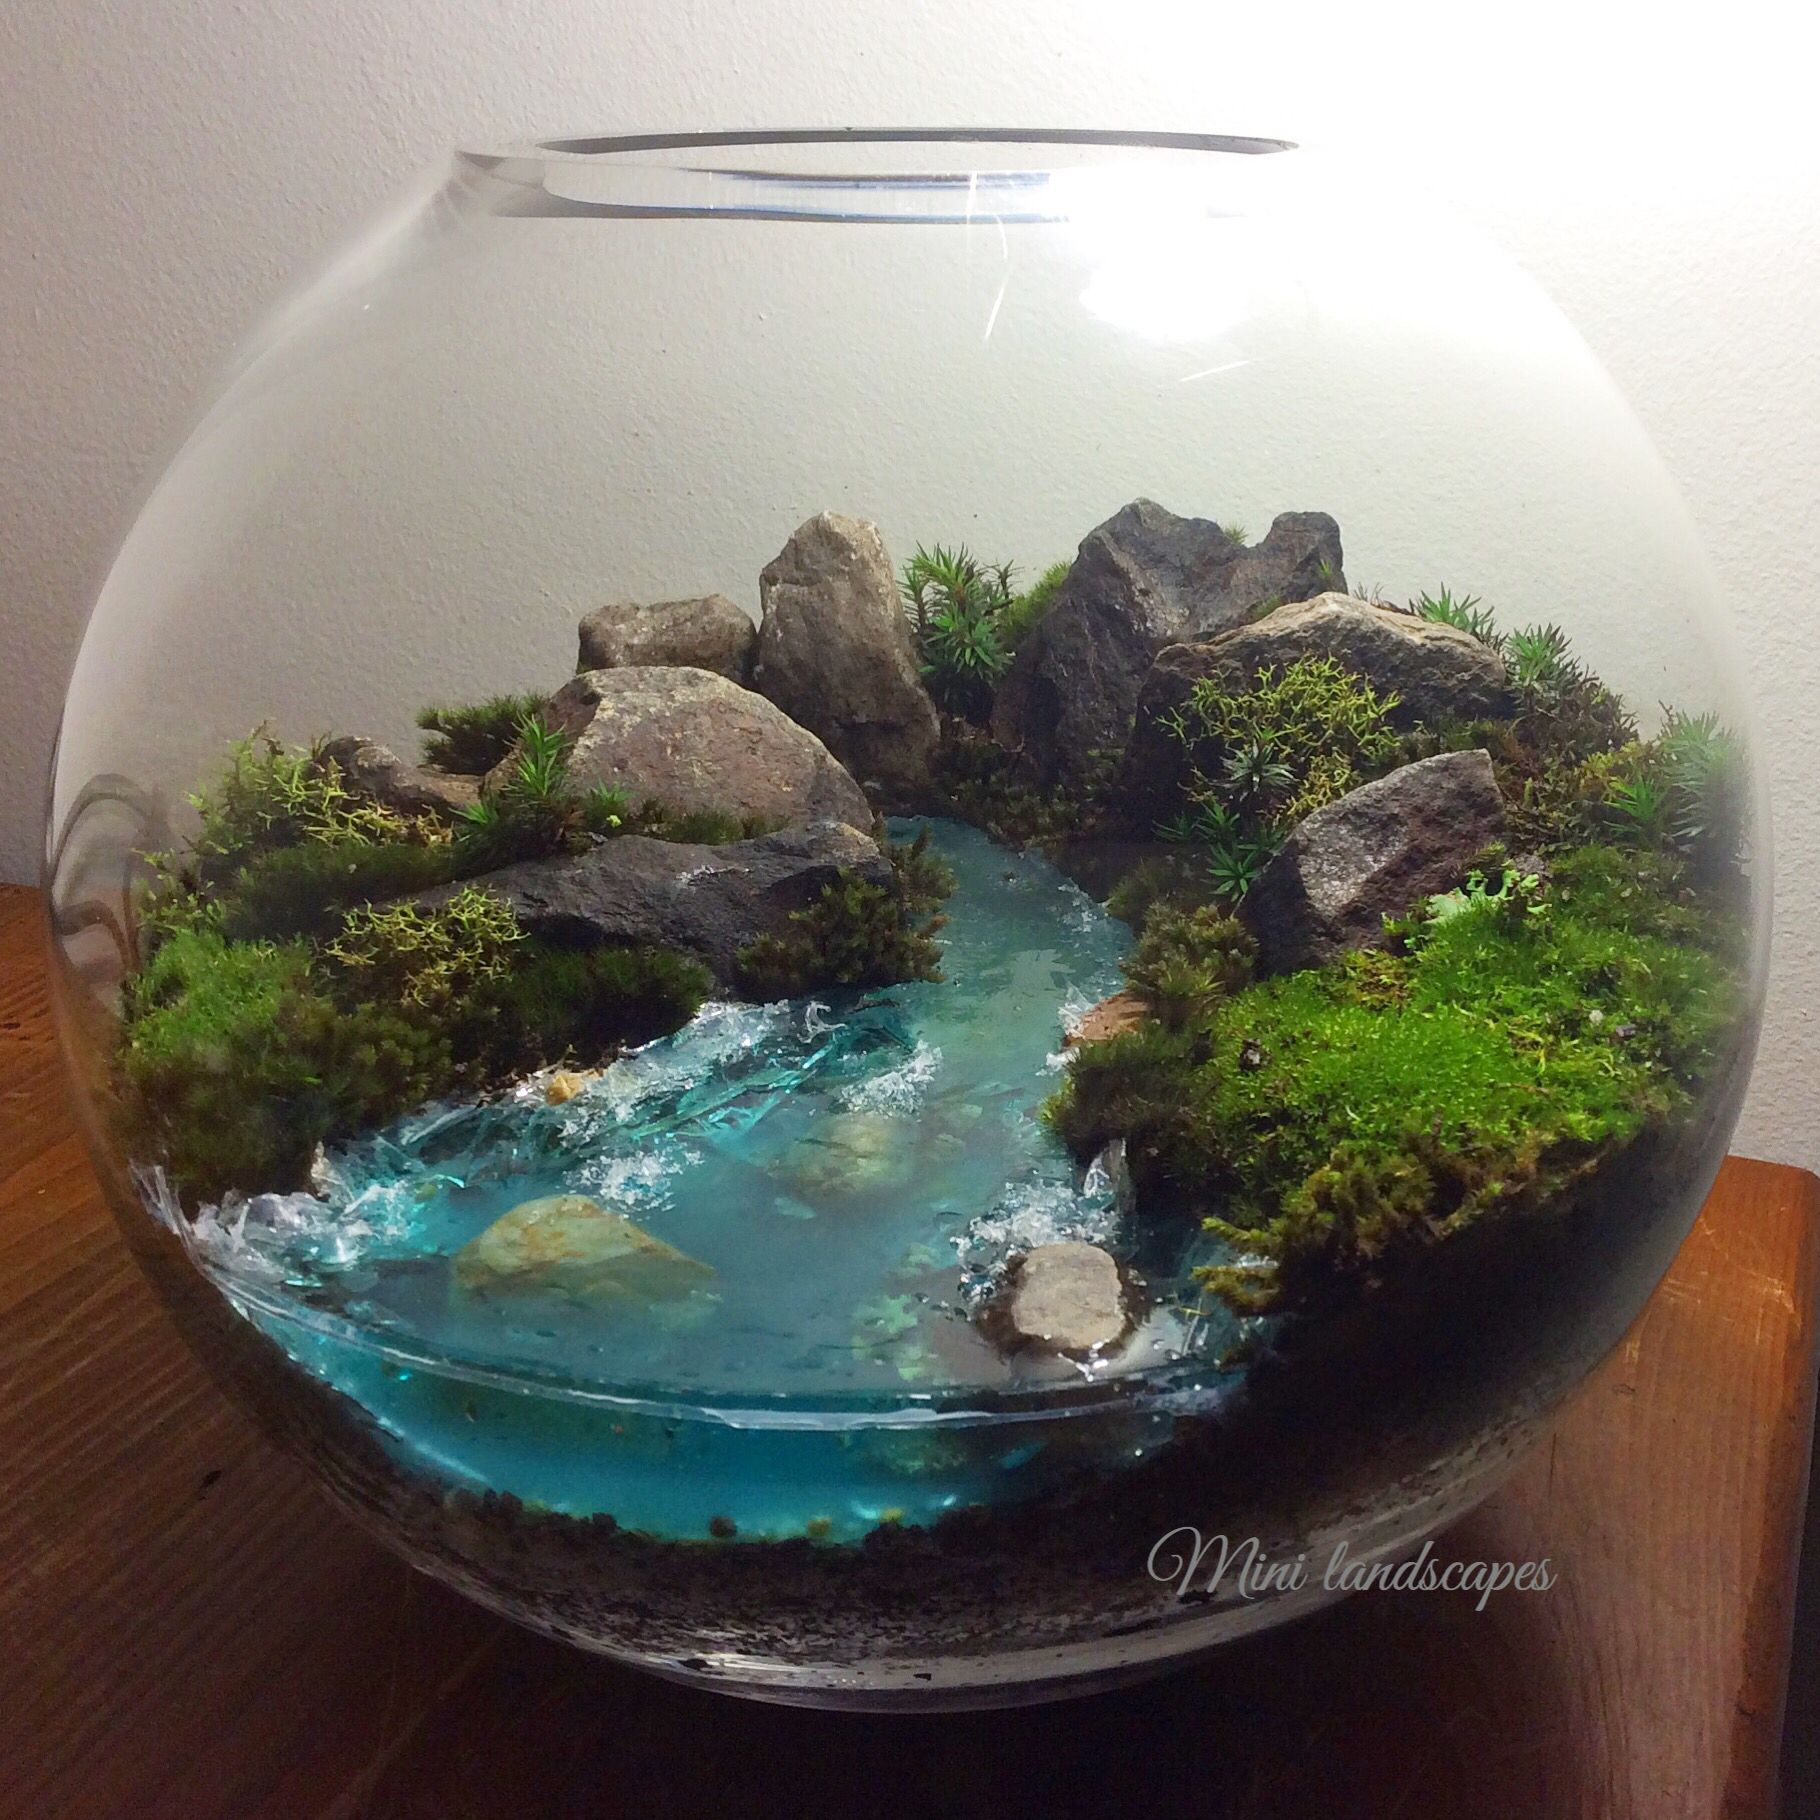 moss landscape with glow in the dark resin river mini landscapes pinterest resin and rivers. Black Bedroom Furniture Sets. Home Design Ideas